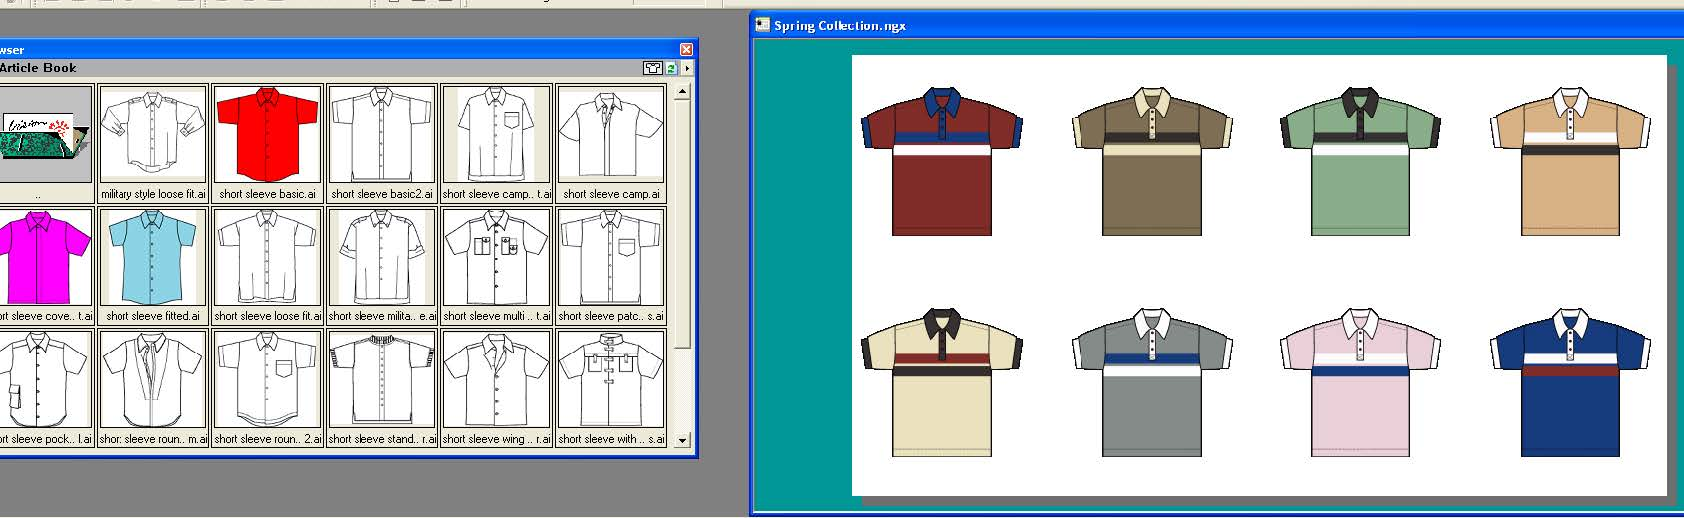 two screen shots side by side showing how to design apparel and access garment sketch library in Adobe Illustrator